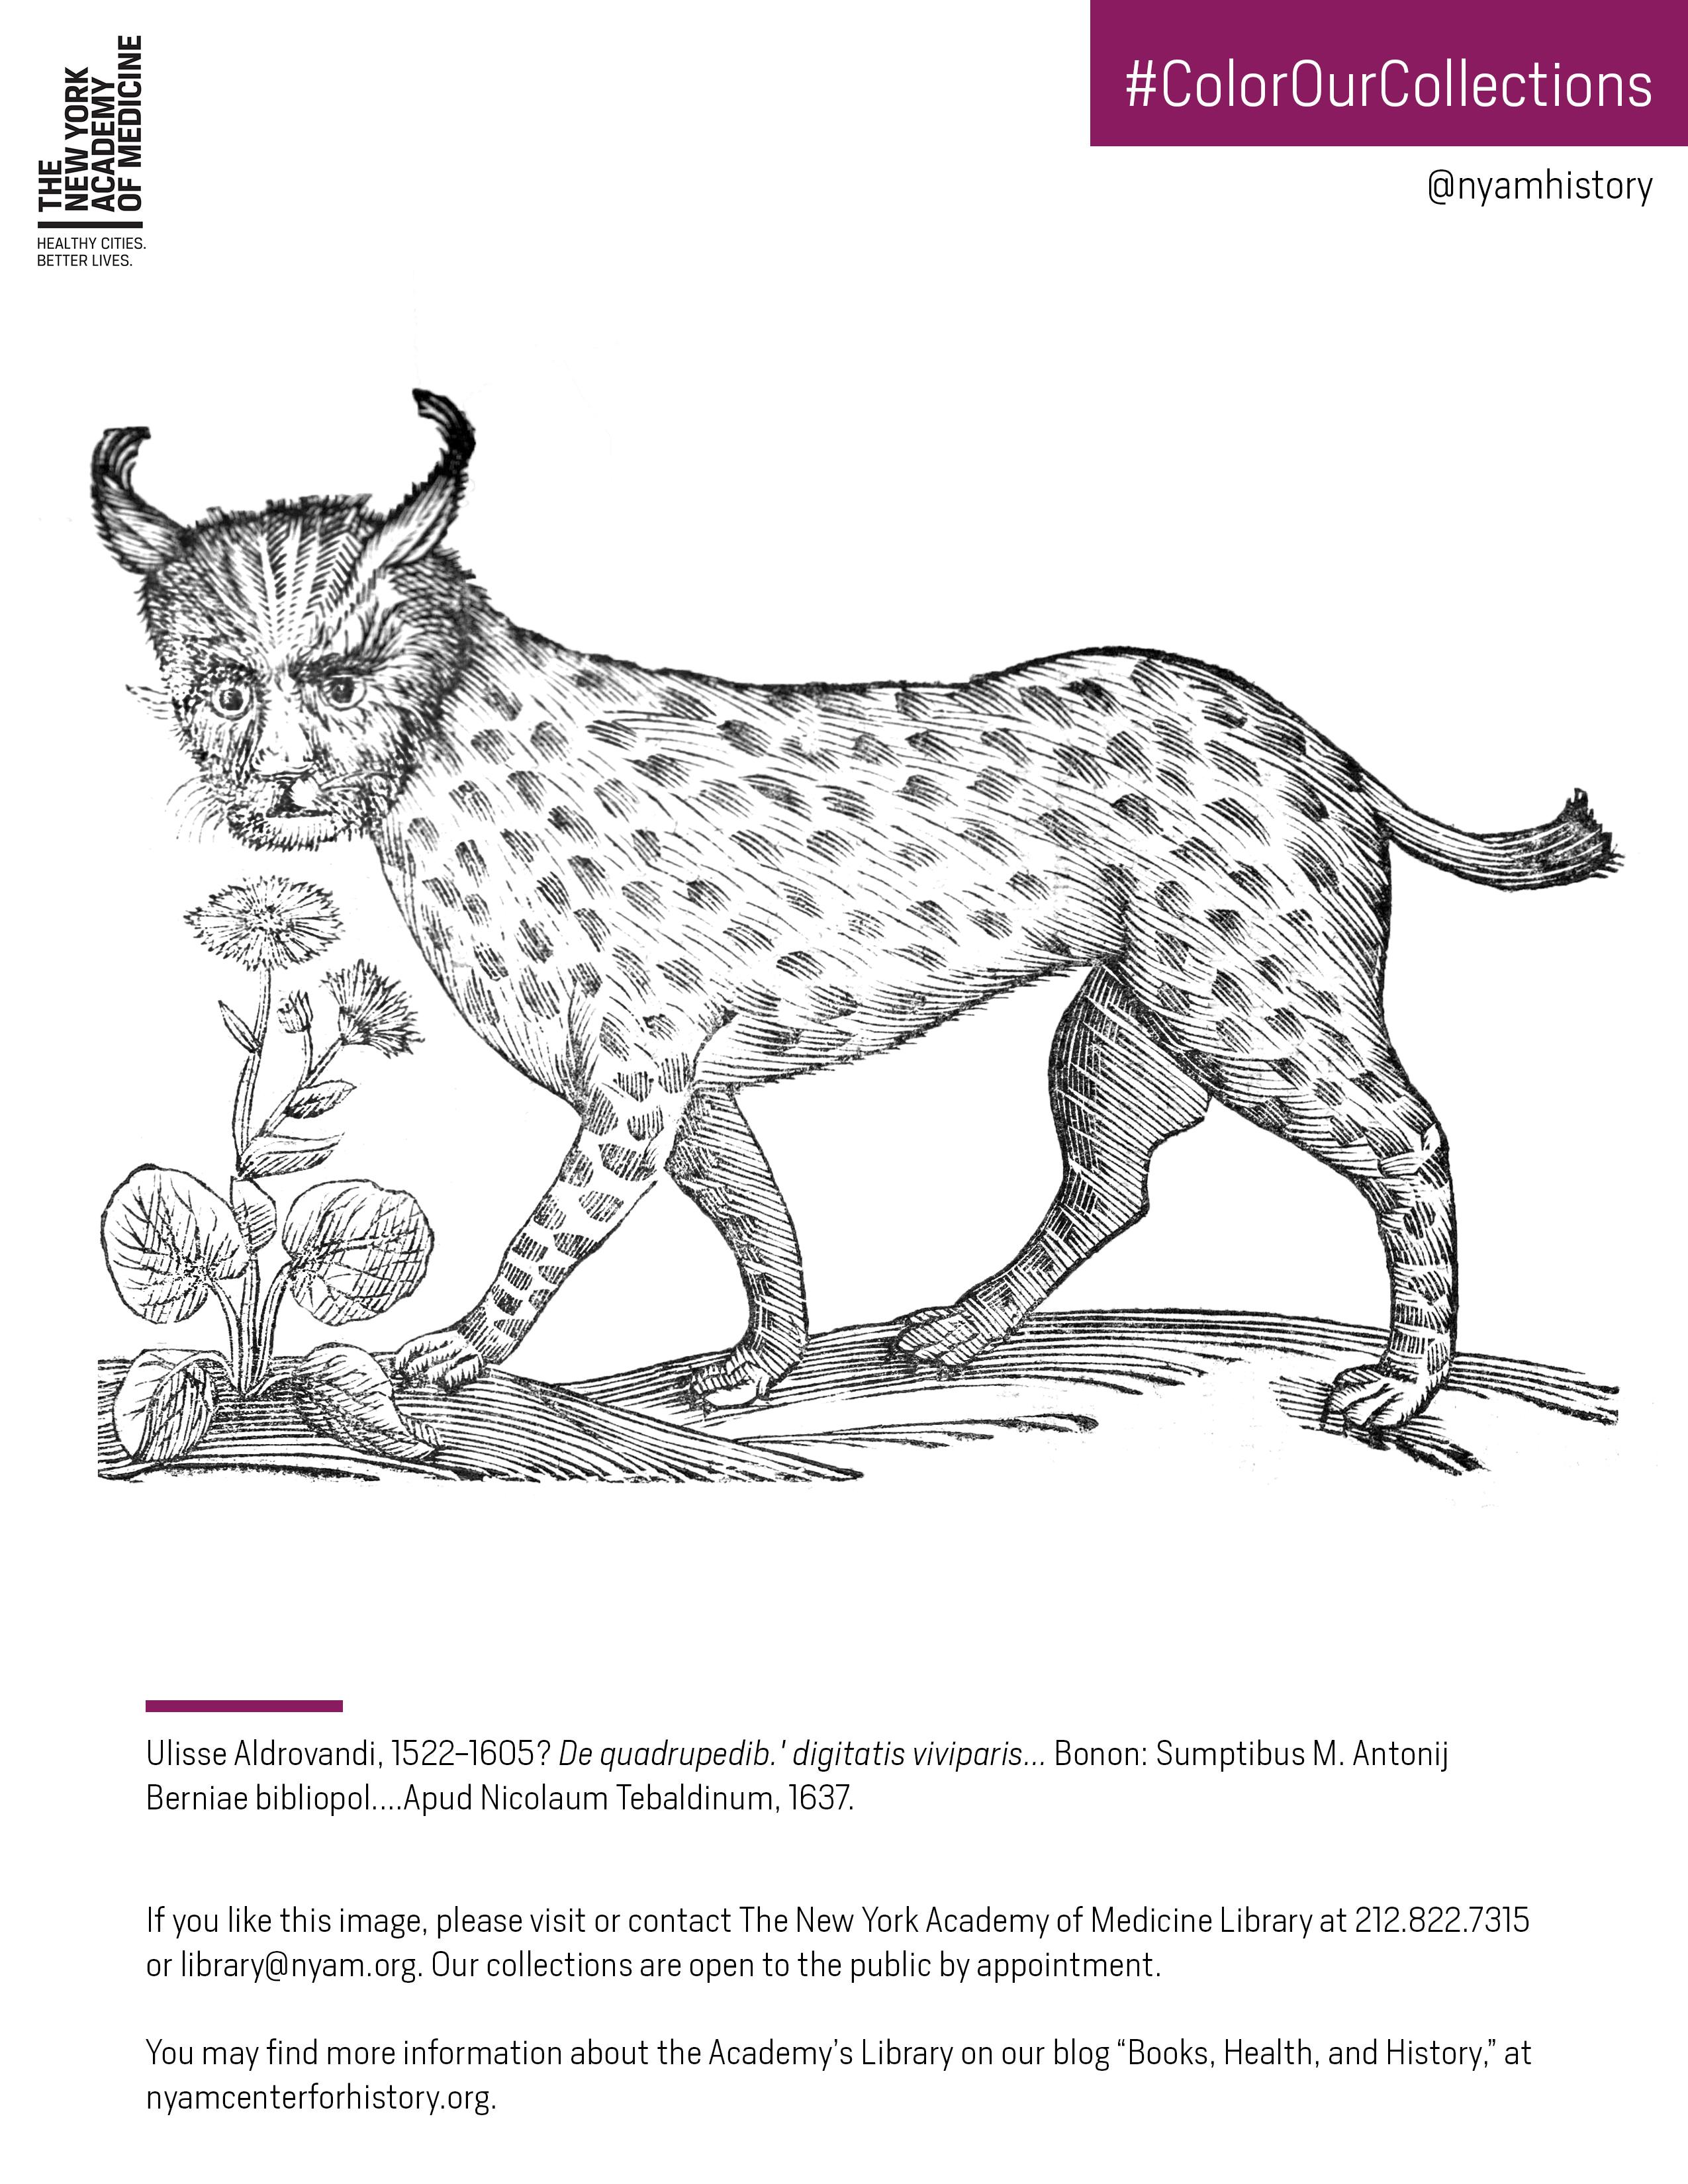 Lynx From Aldrovandis De Quadrupedib Digitatis Viviparis 1637 Click To Download The PDF